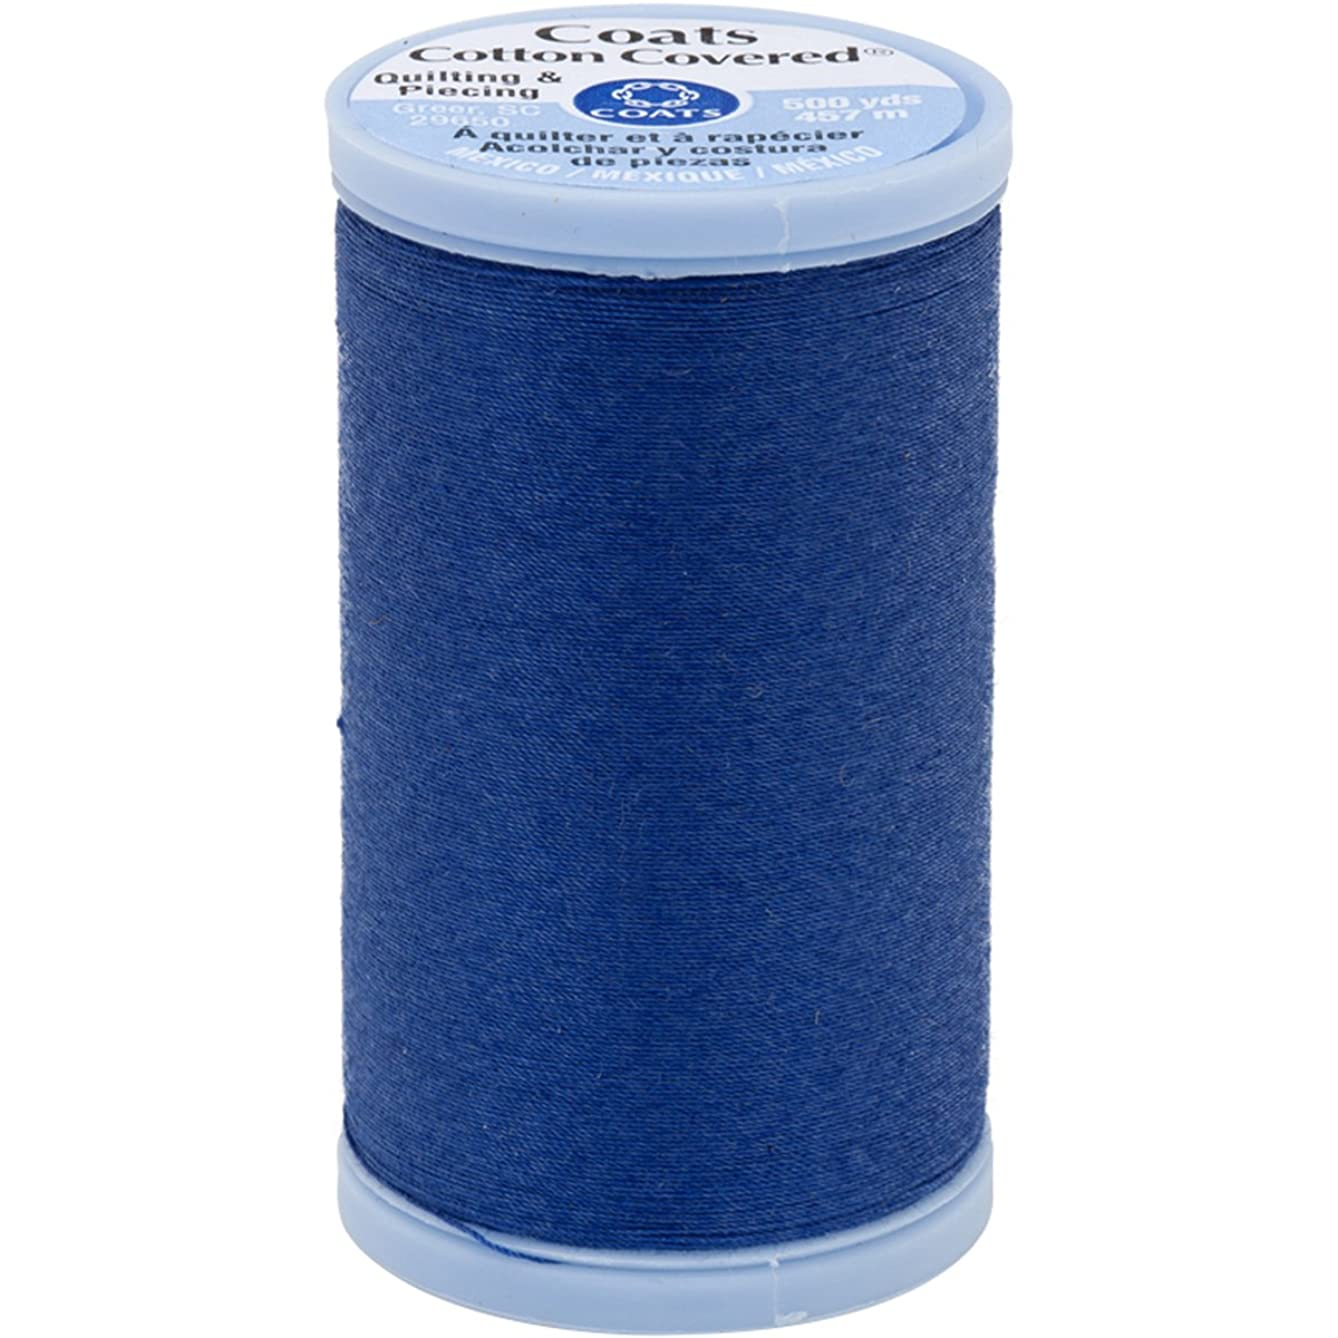 Coats Cotton Covered Quilting and Piecing Thread, 500-Yard, Yale Blue